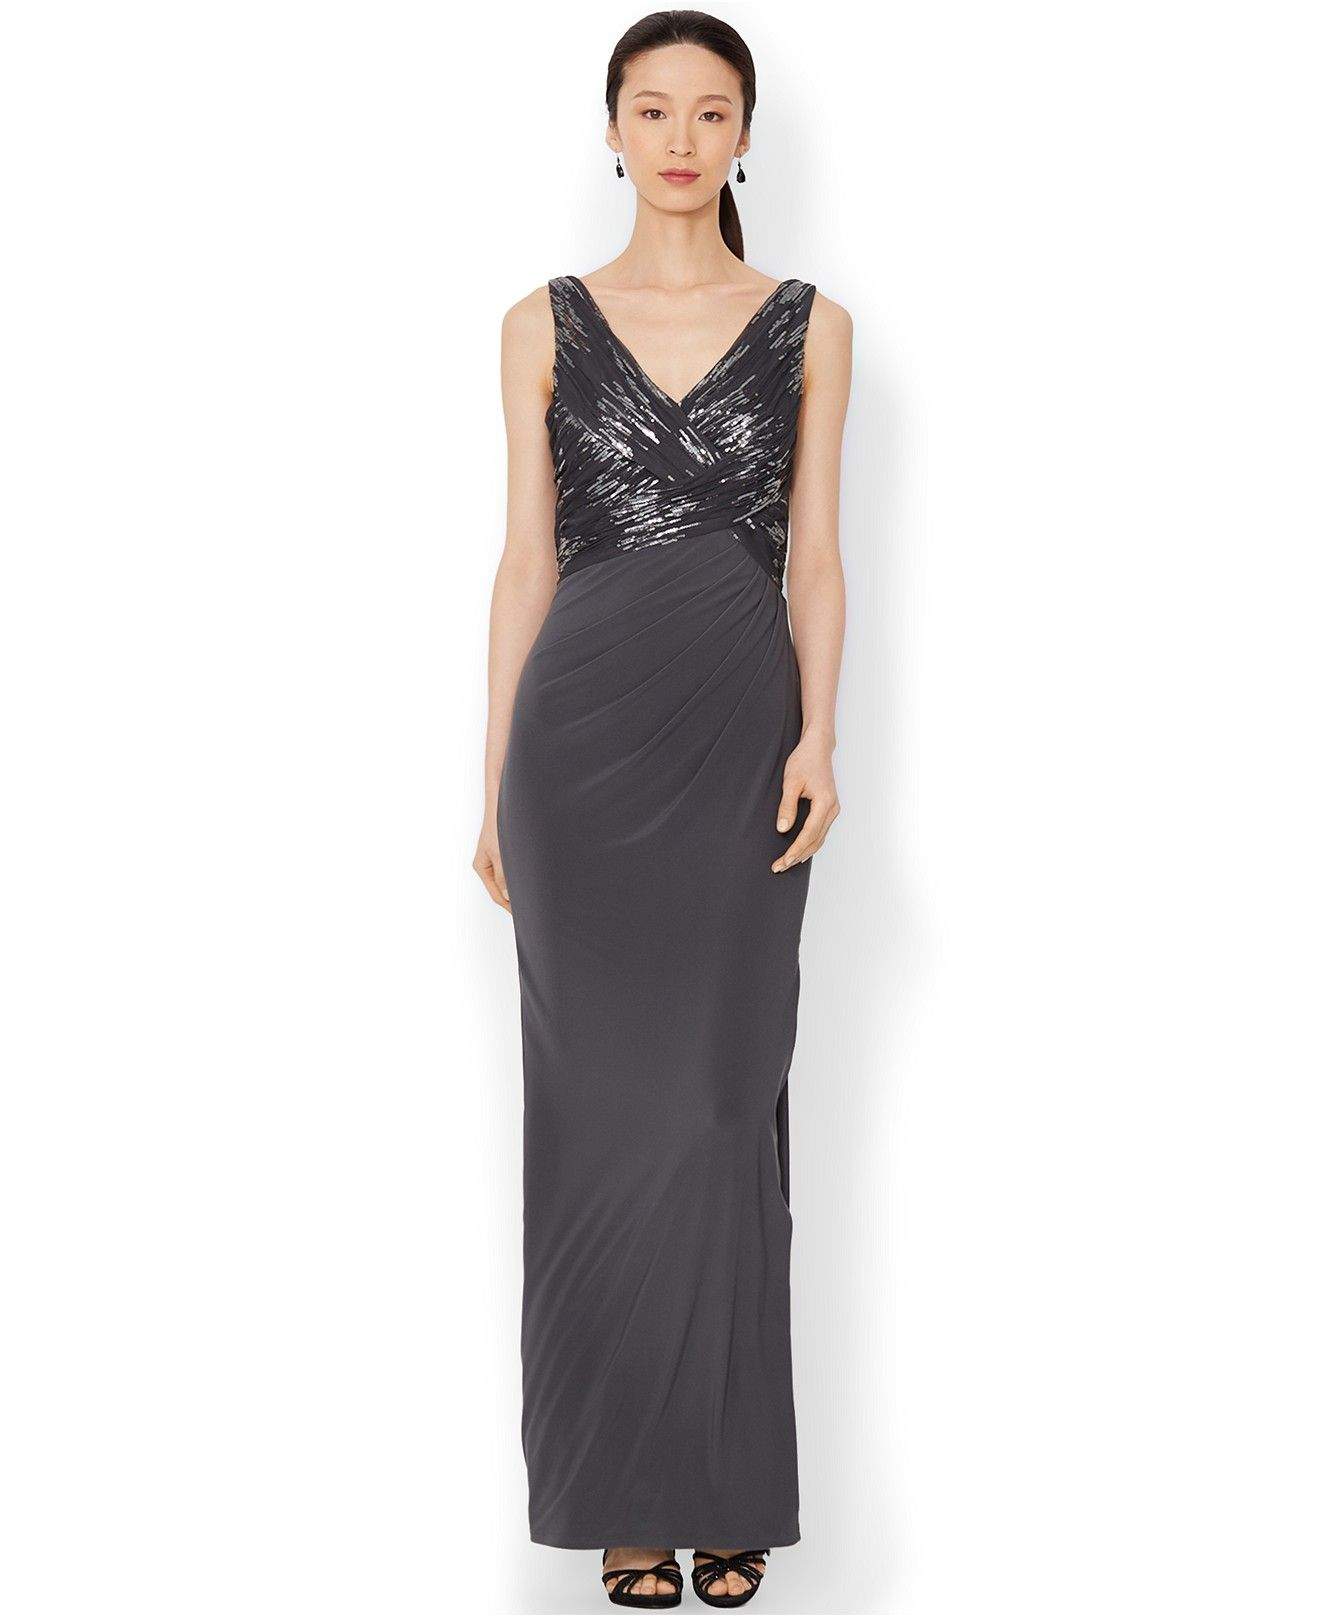 Lauren Ralph Lauren Petite Sleeveless V-Neck Sequined Gown - Dresses - Women - Macy's